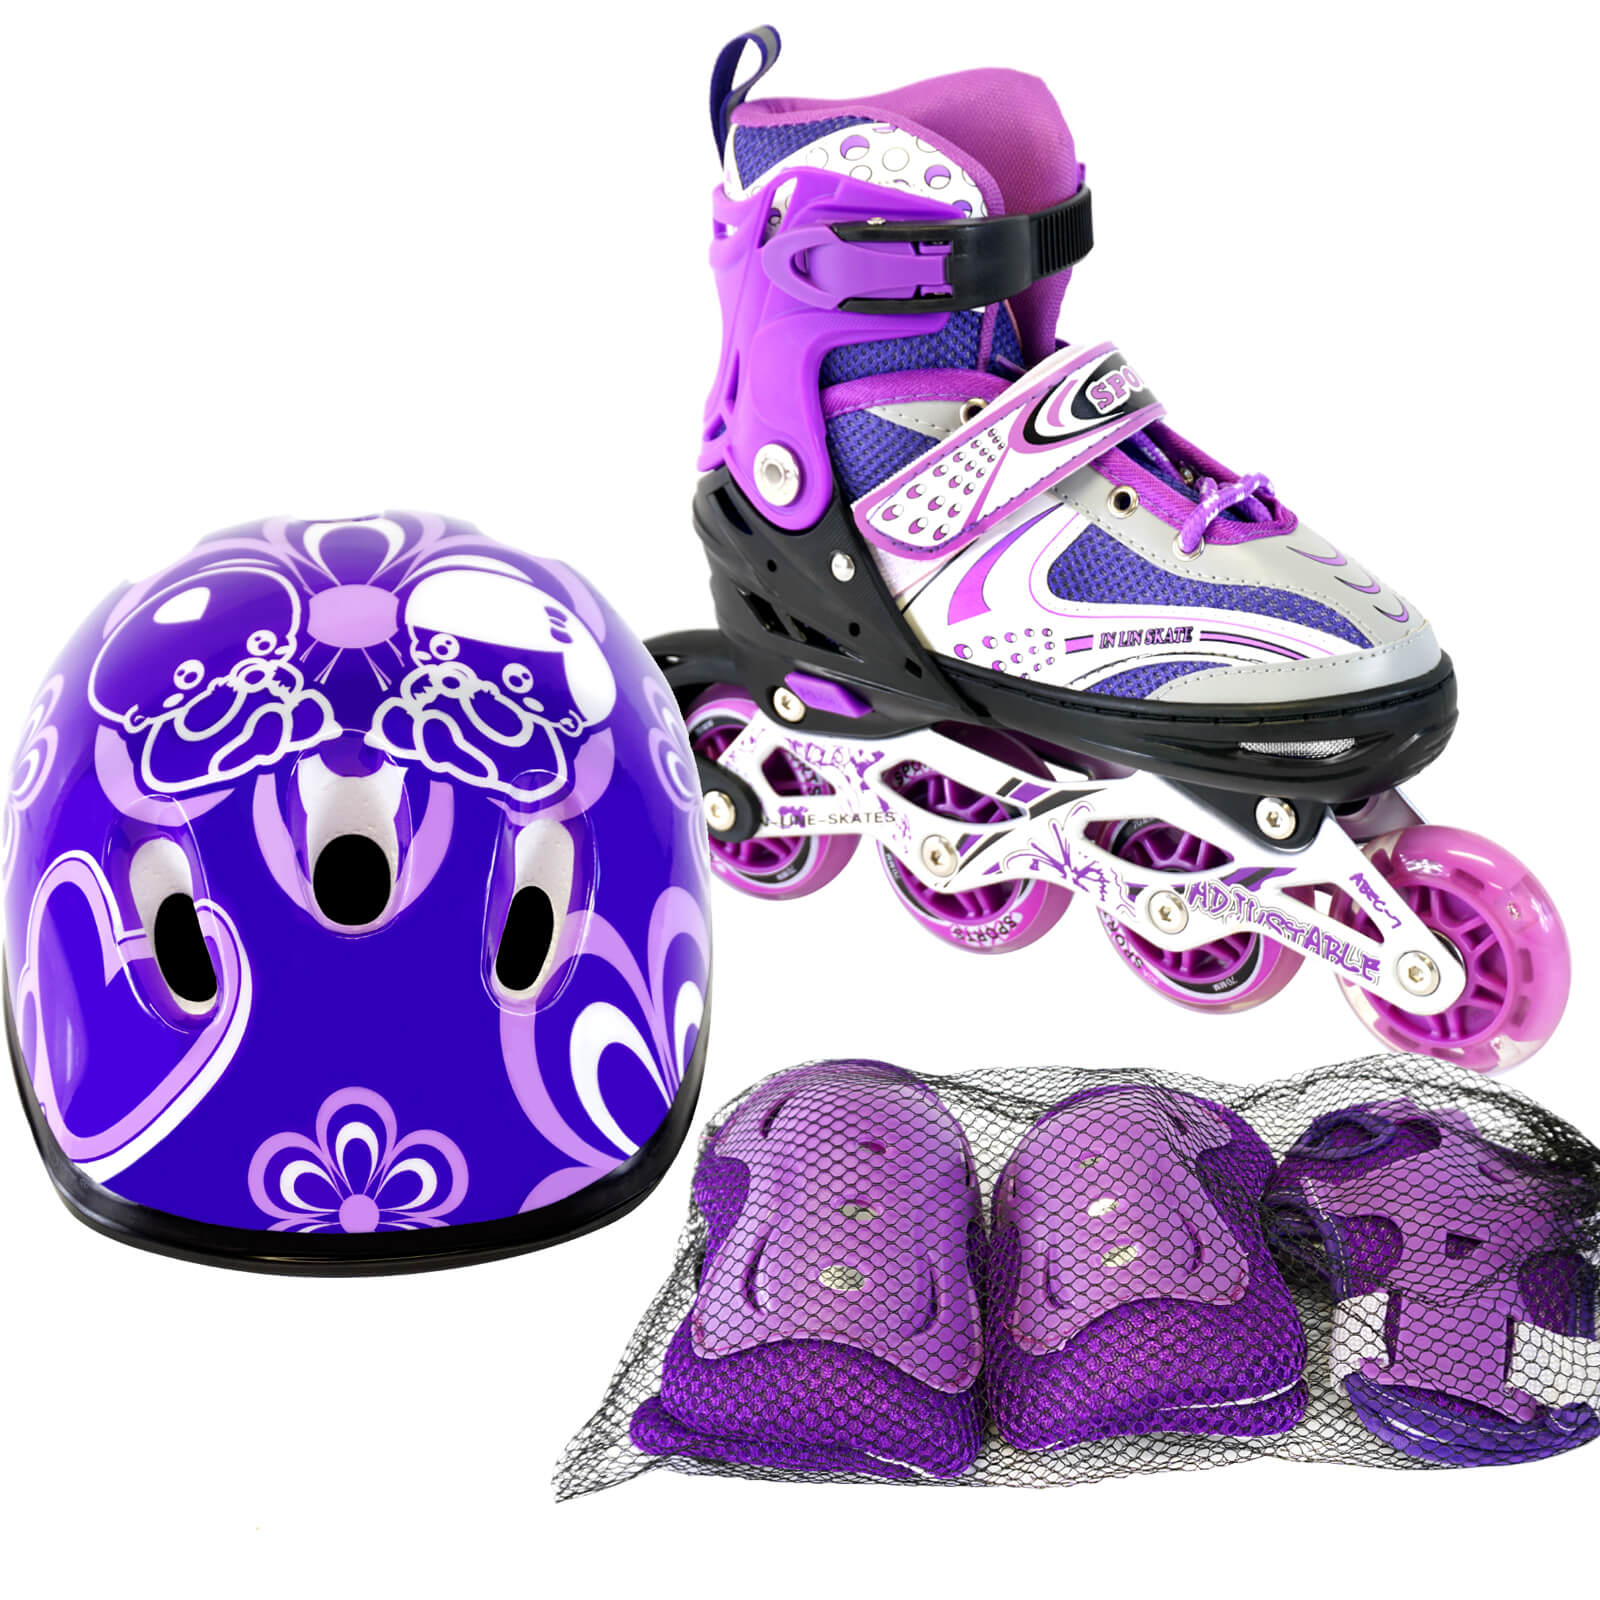 Size 11J-2 Adjustable Kids Light Up Inline Skates Complete Set